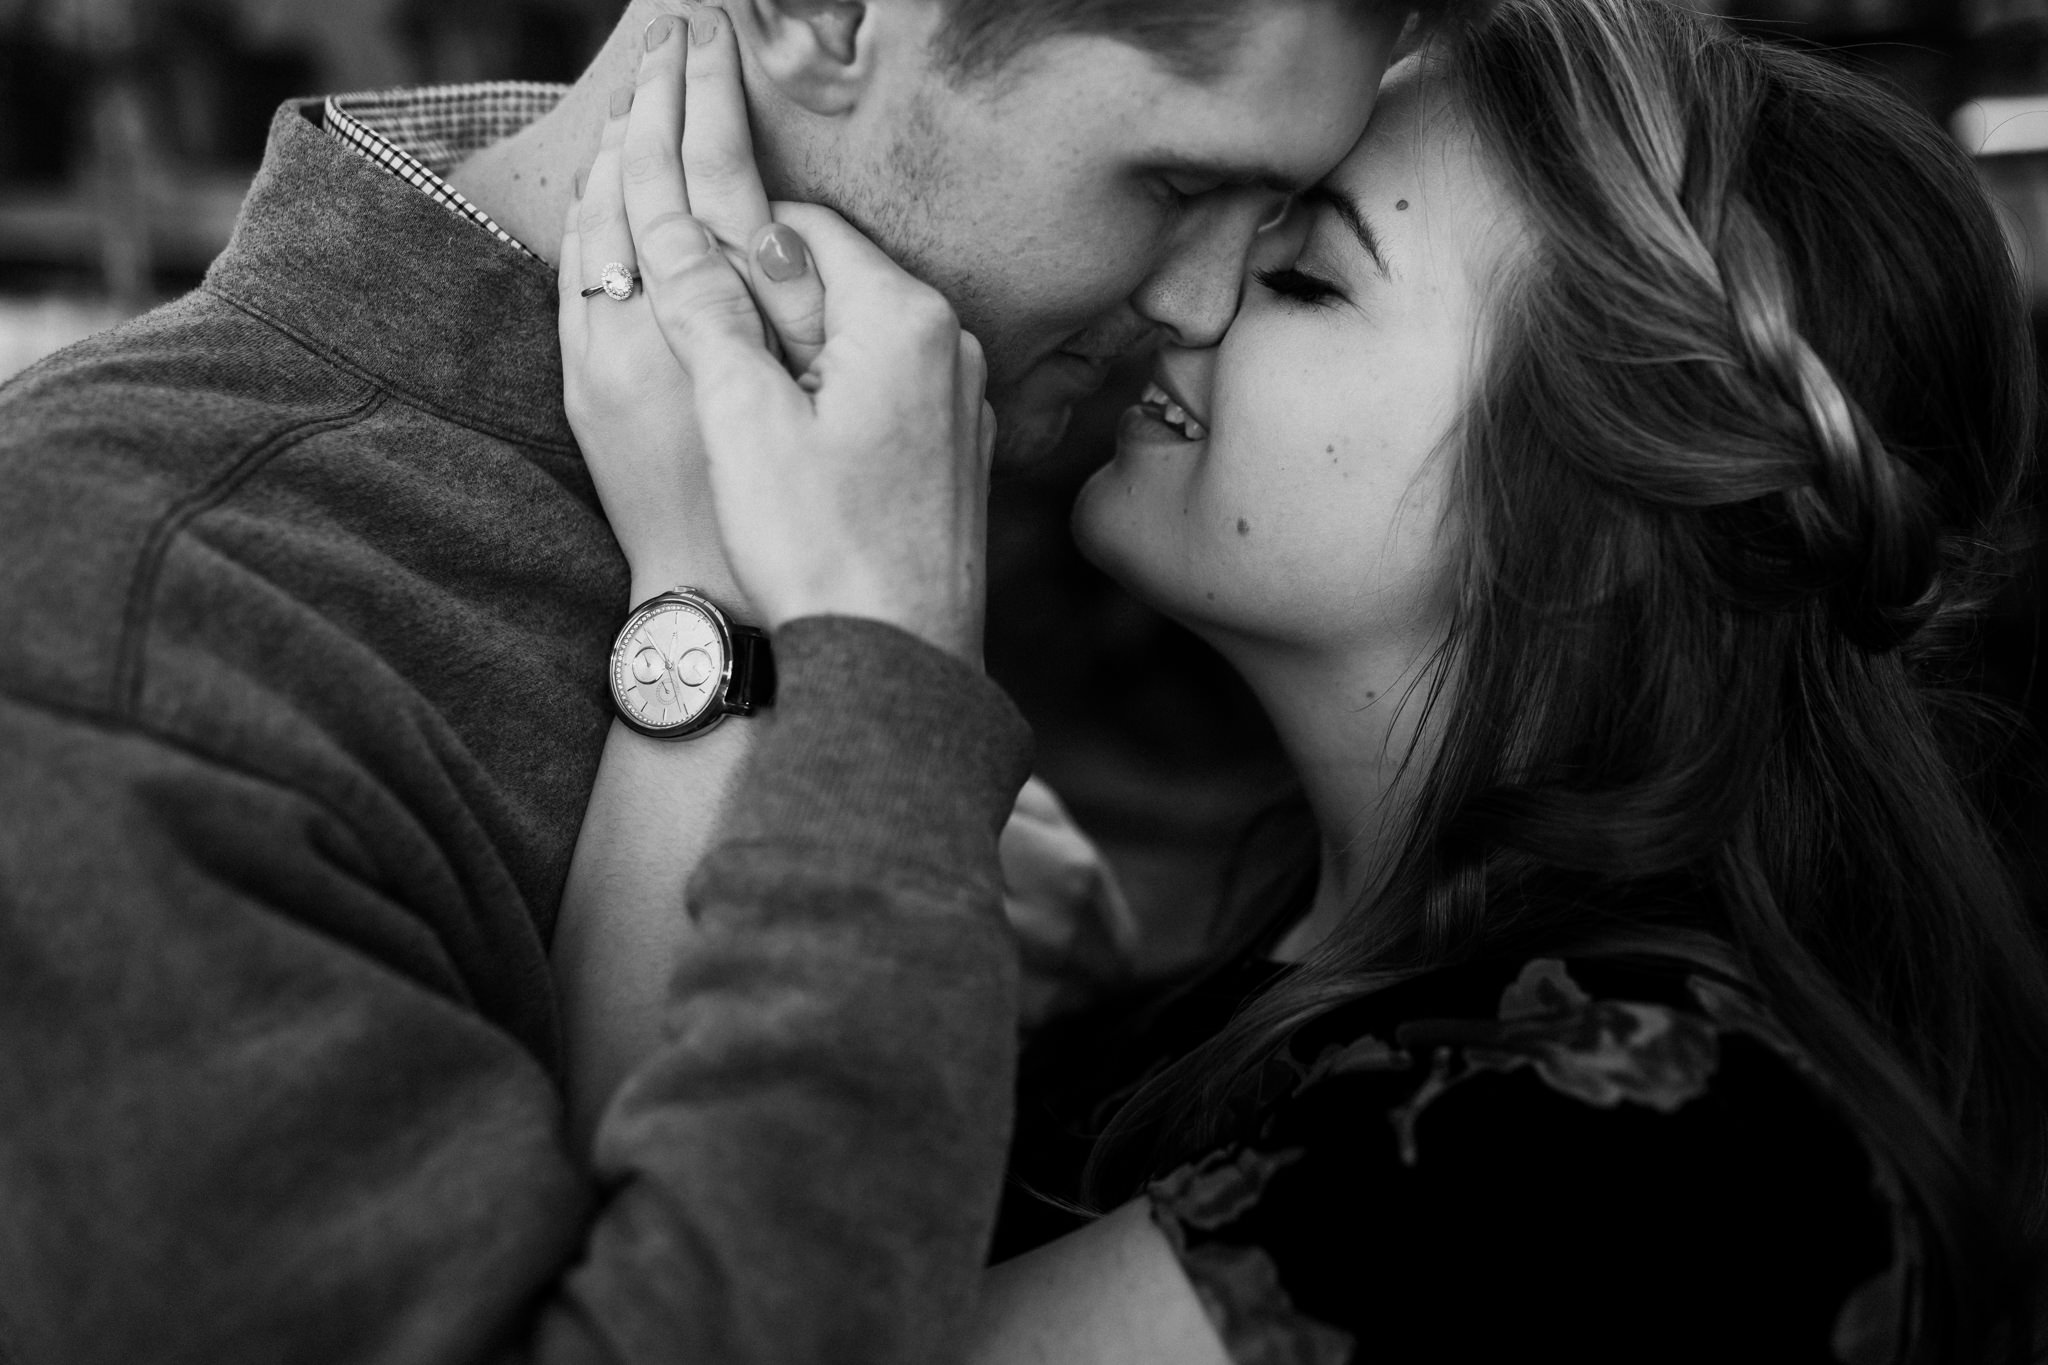 memphis-wedding-photographer-greenhouse-engagement-pictures-cassie-cook-photography-11.jpg